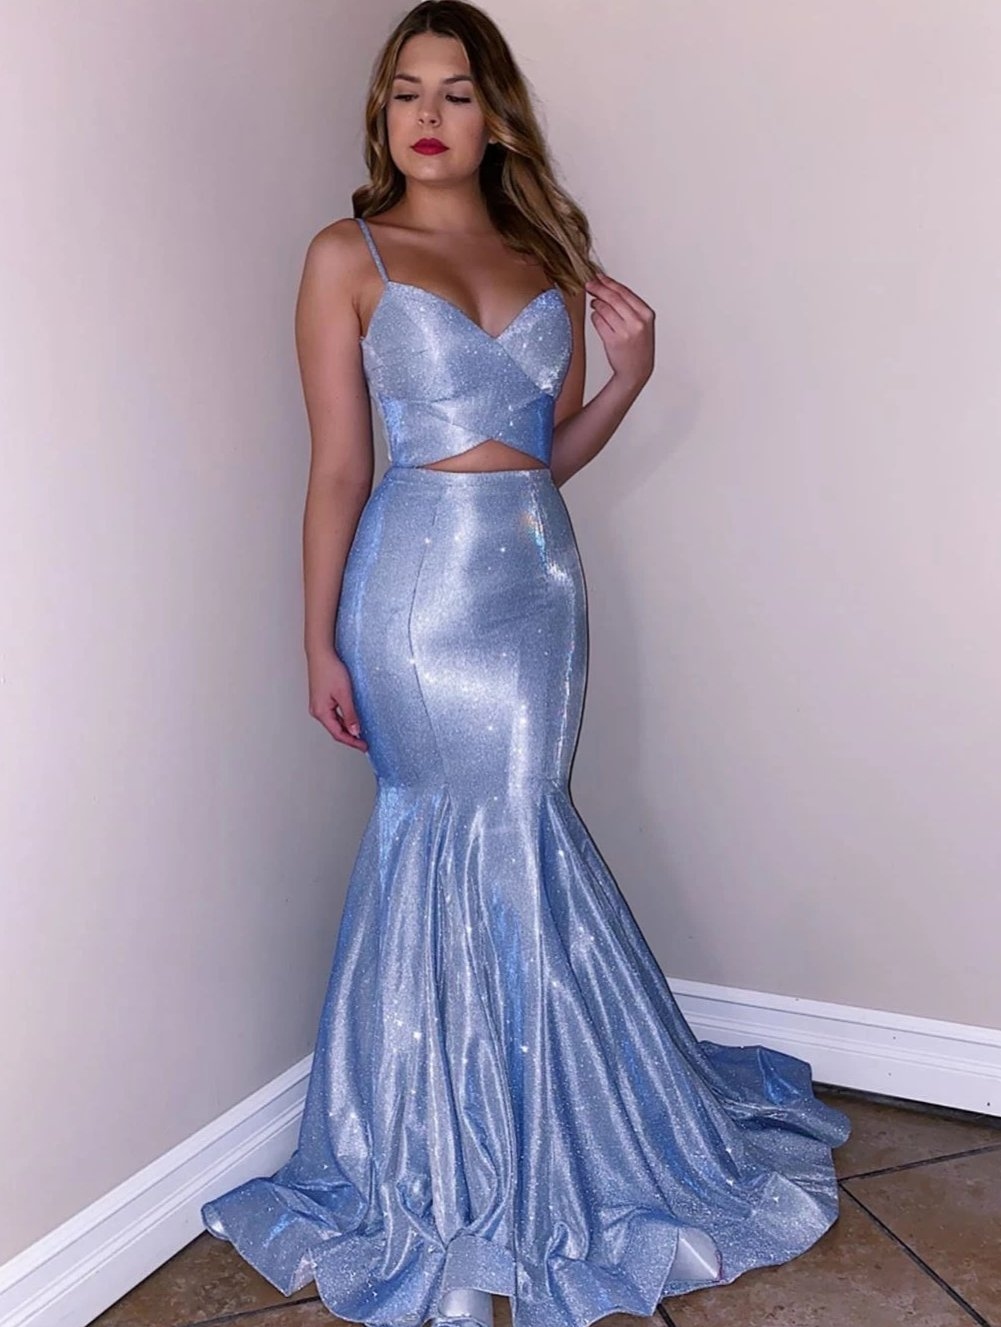 Spaghetti Straps V-Neck Blue Two Piece Prom Dress Glitter,JKZ7111|Annapromdress